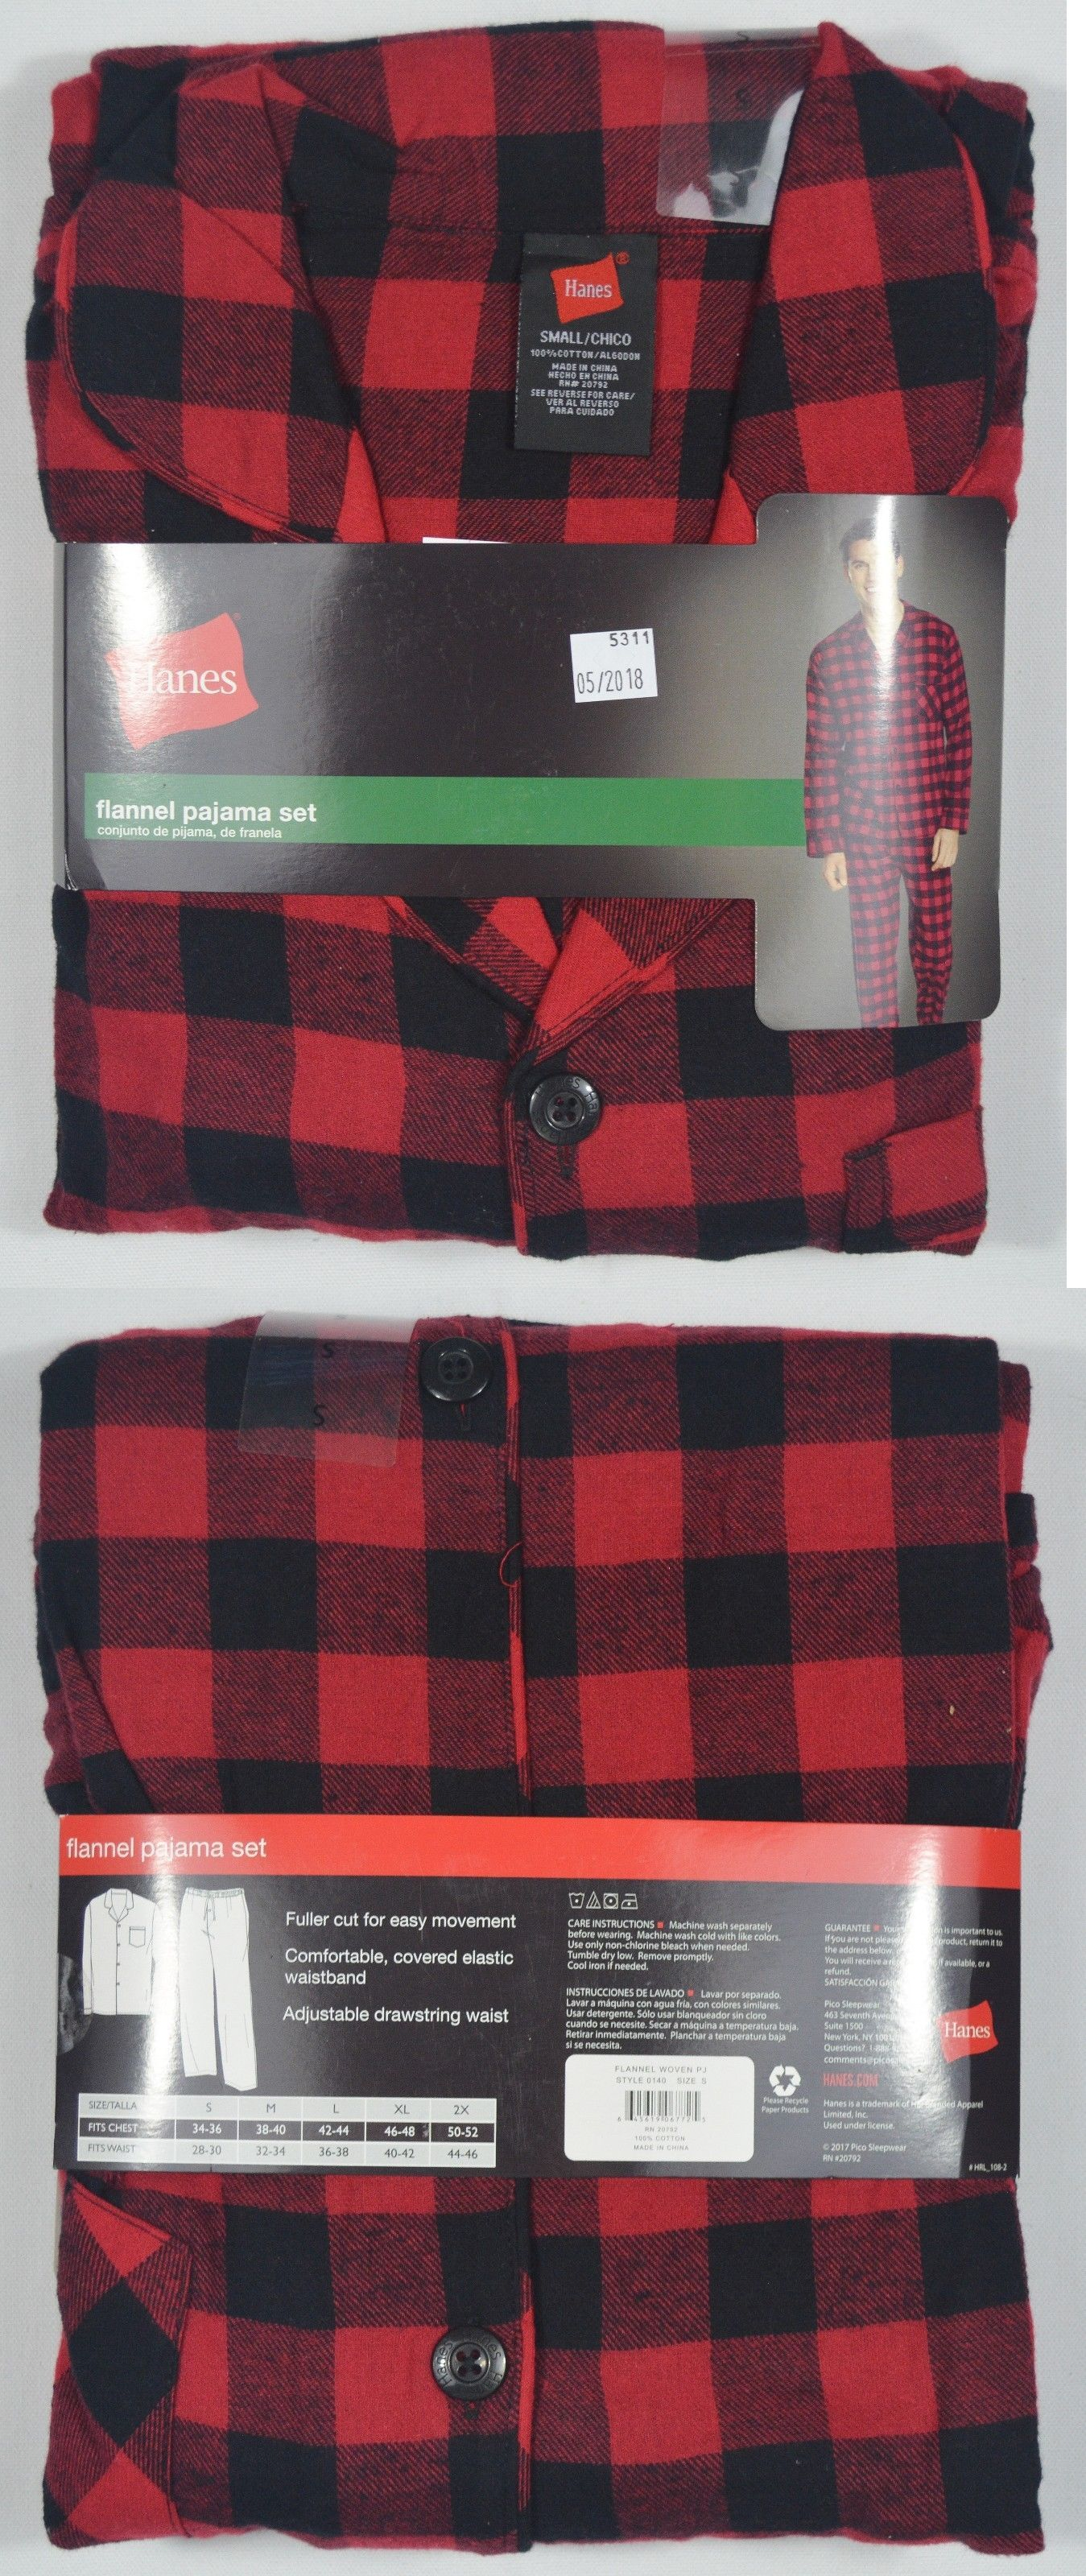 37114d137be Sleepwear and Robes 11510  Hanes  5311 New Men S Plaid 100% Cotton Flannel  Pajama Set -  BUY IT NOW ONLY   14.39 on  eBay  sleepwear  robes  hanes   plaid ...